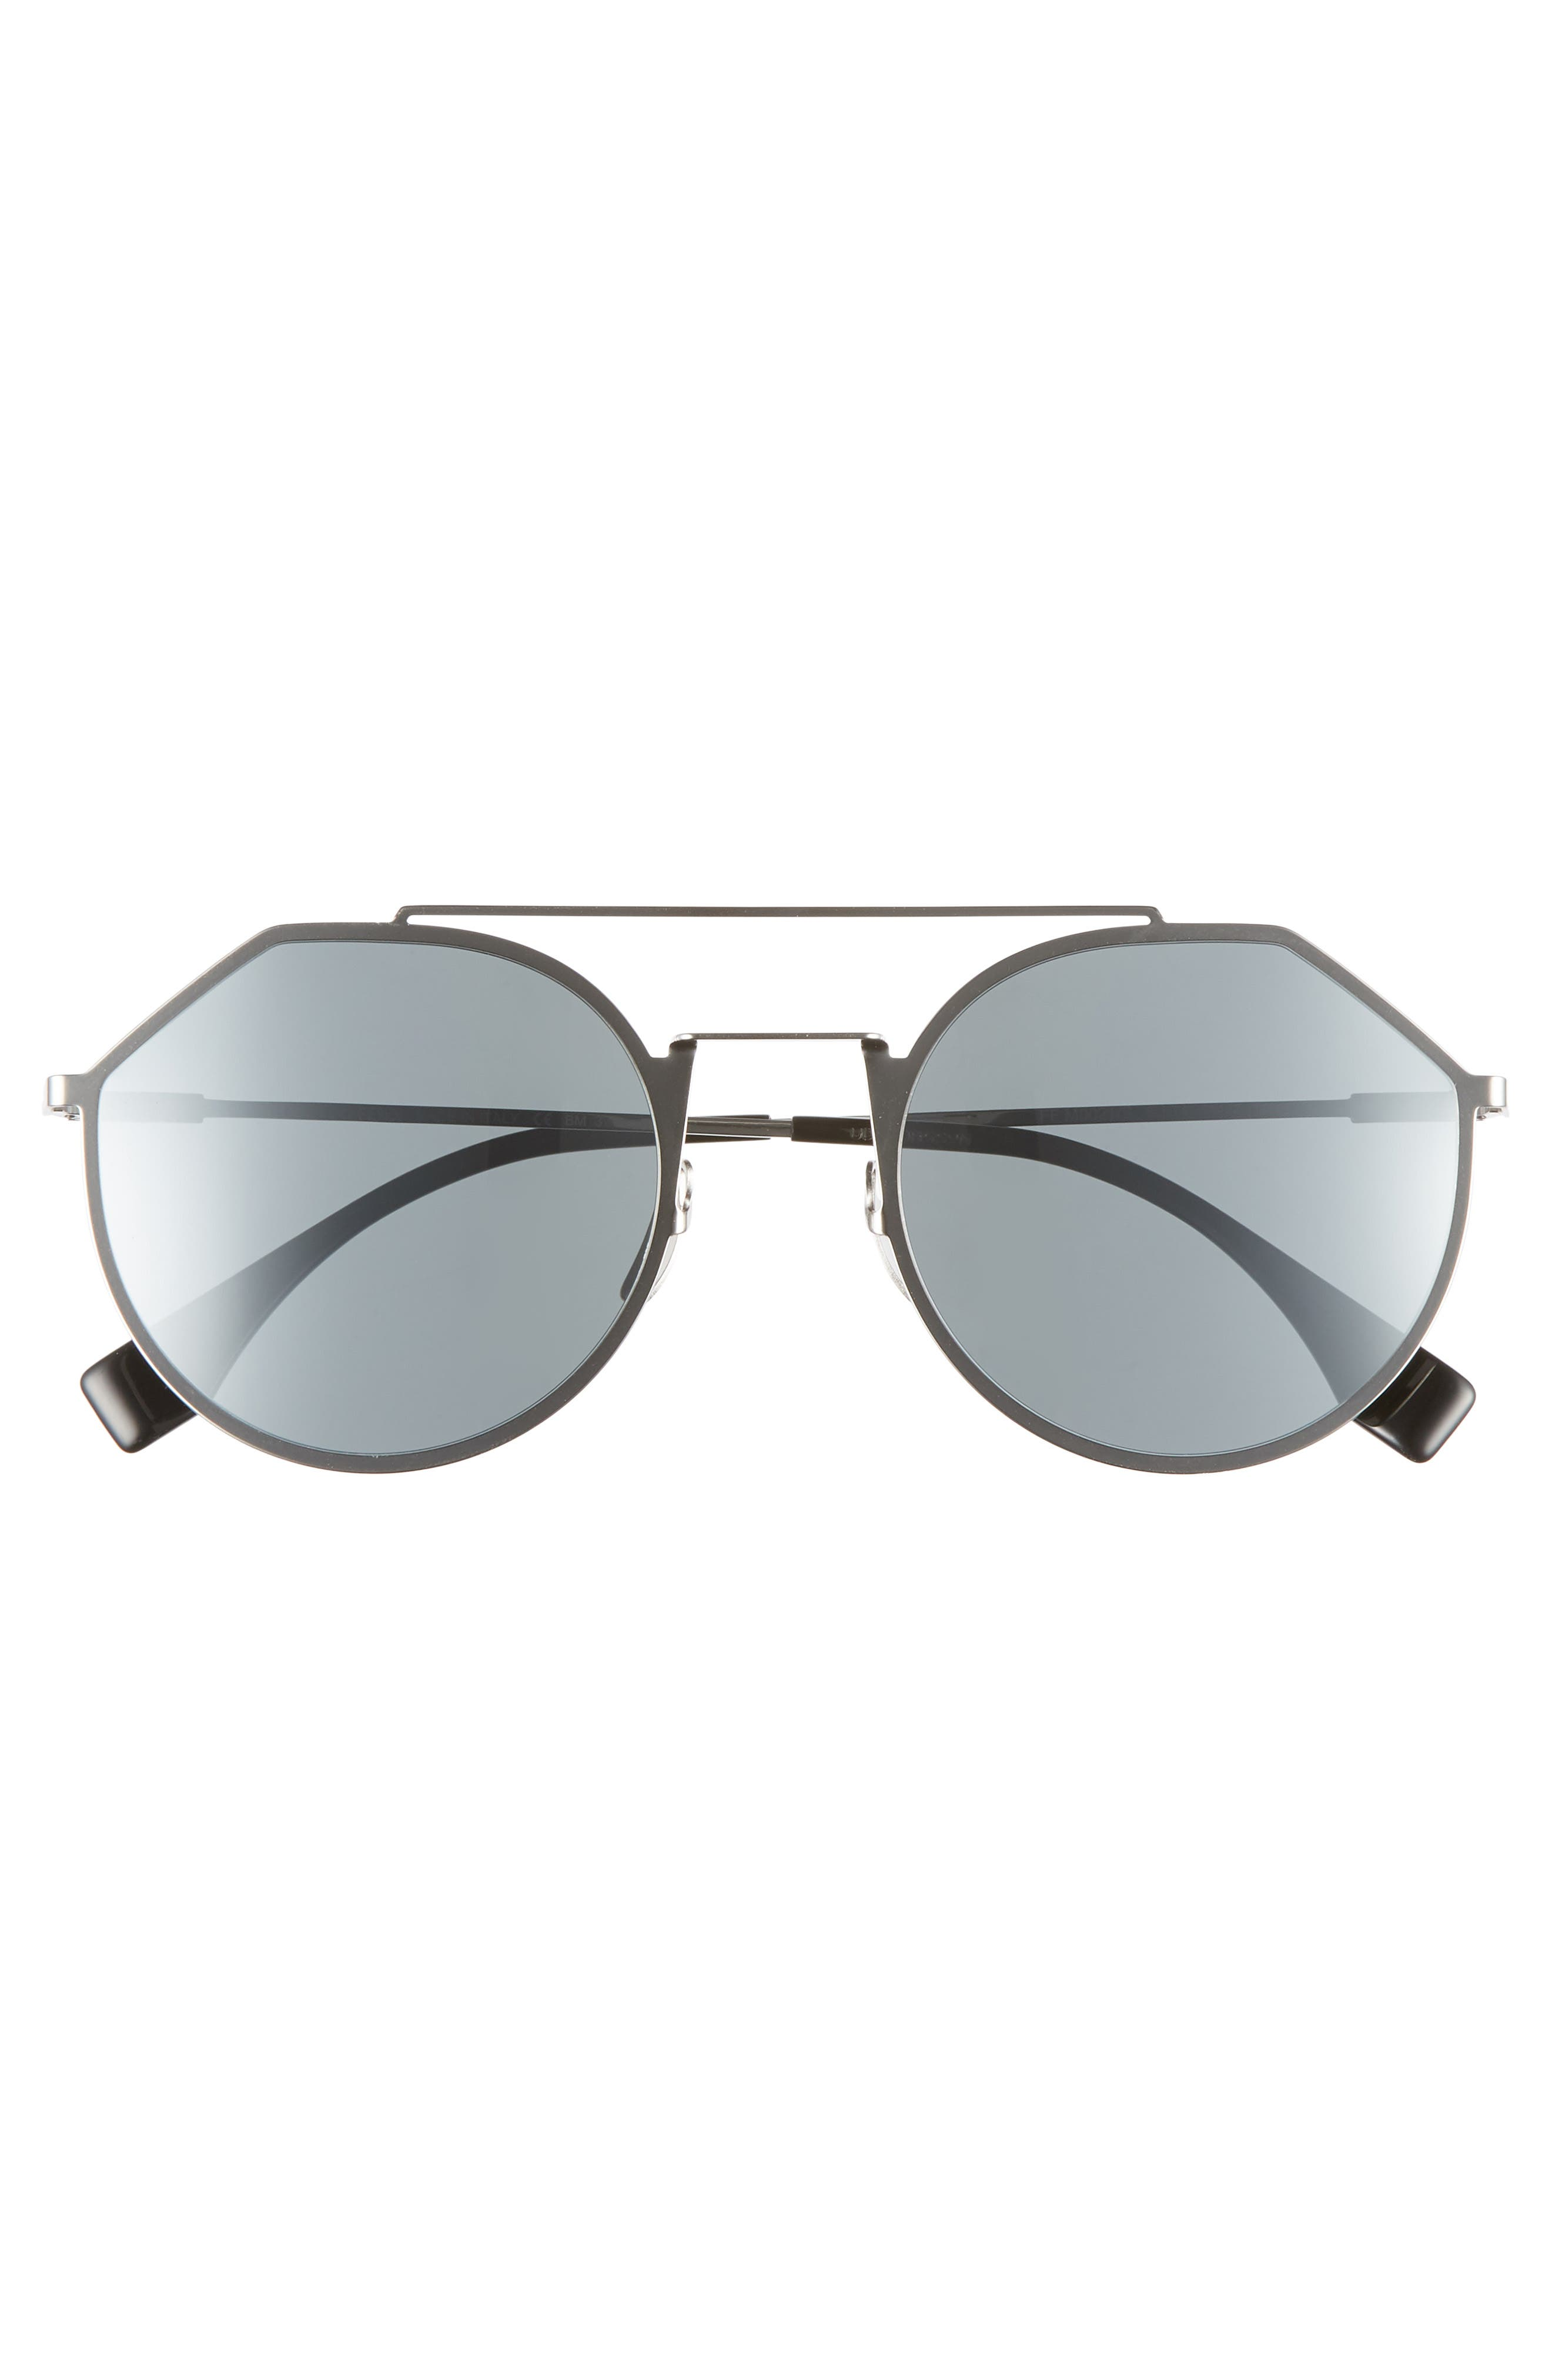 54mm Round Sunglasses,                             Alternate thumbnail 3, color,                             RUTHENIUM